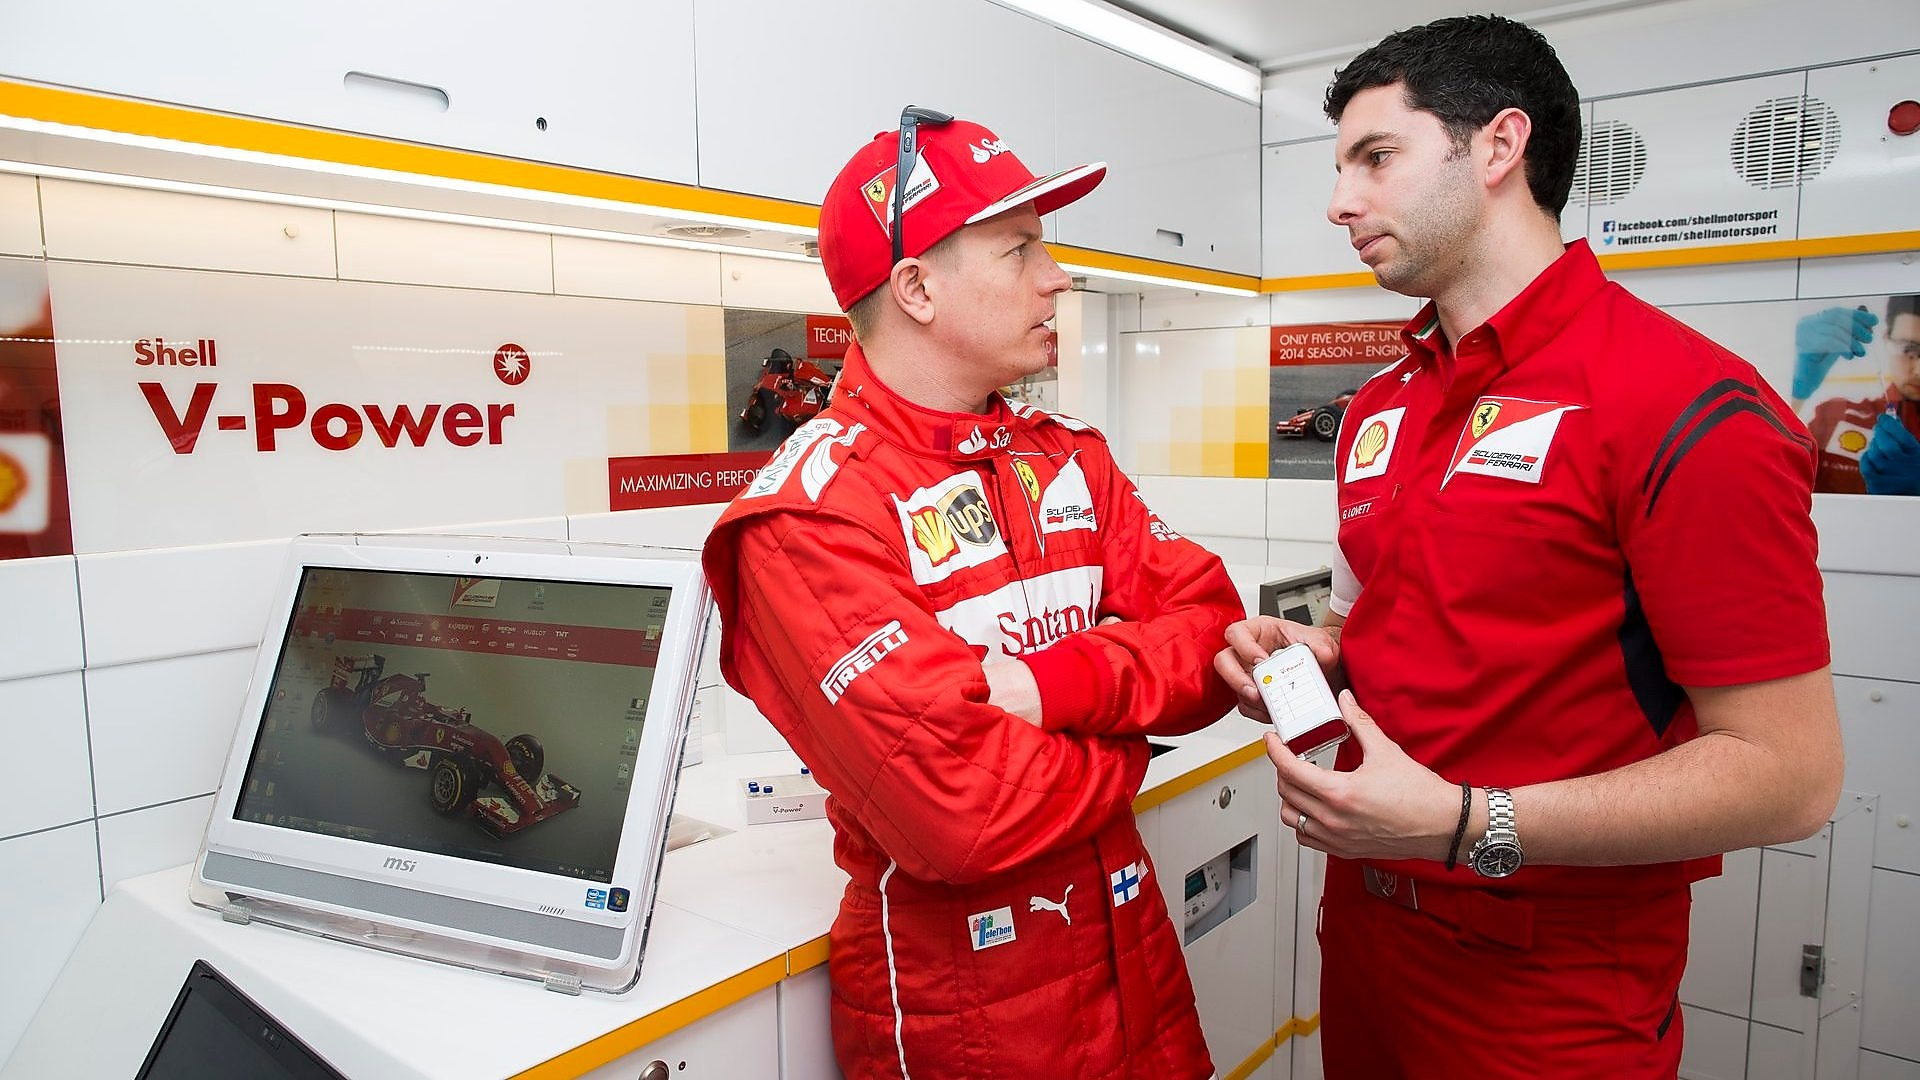 Shell V-Power NiTRO+ Premium Gasoline FAQs